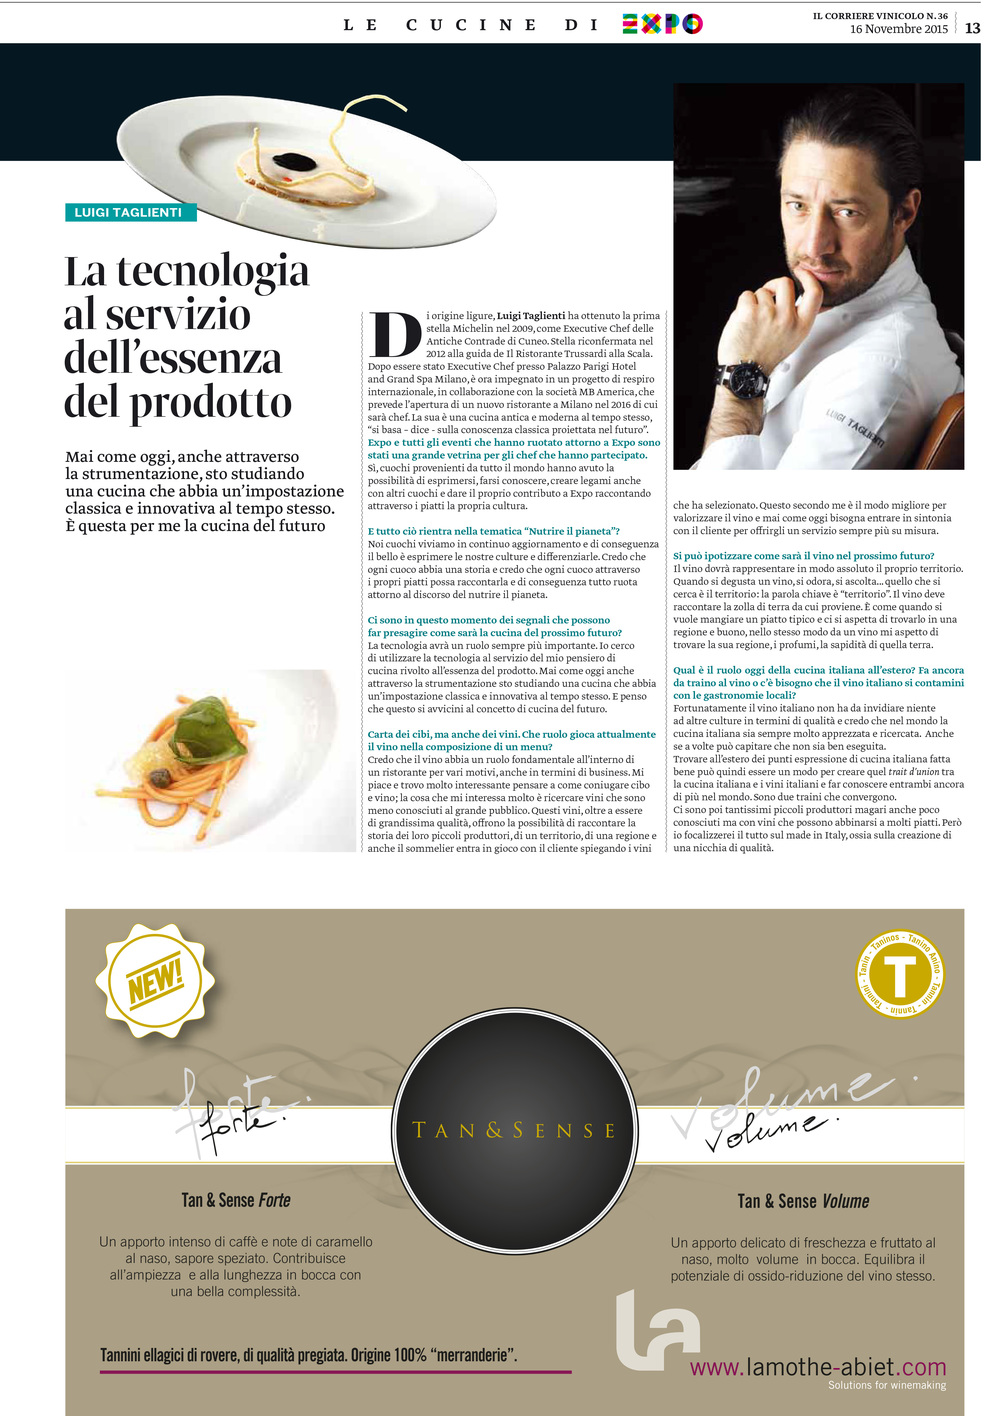 "<p><strong>IL CORRIERE VINICOLO</strong><a href=""/s/IL_CORRIERE_VINICOLO_161115.pdf"" target=""_blank"">Download Article→</a></p>"